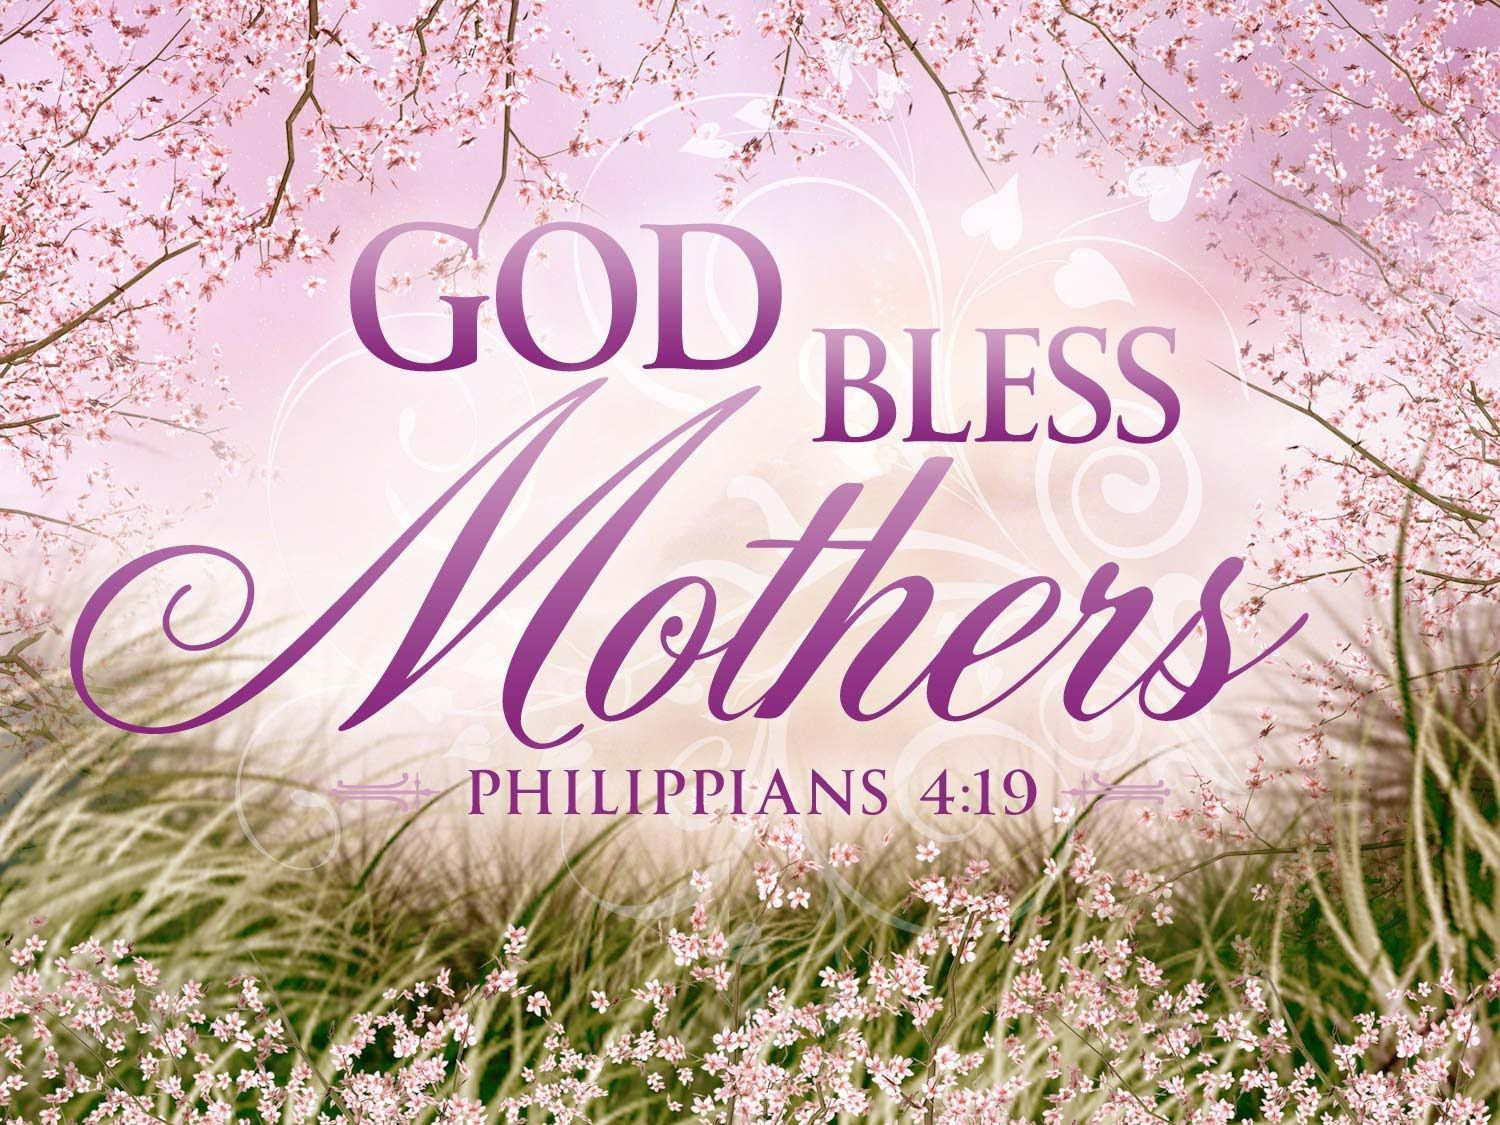 Bible Quotes About Mothers Happy Mothers Day To All The Moms Out There Husbands & Children